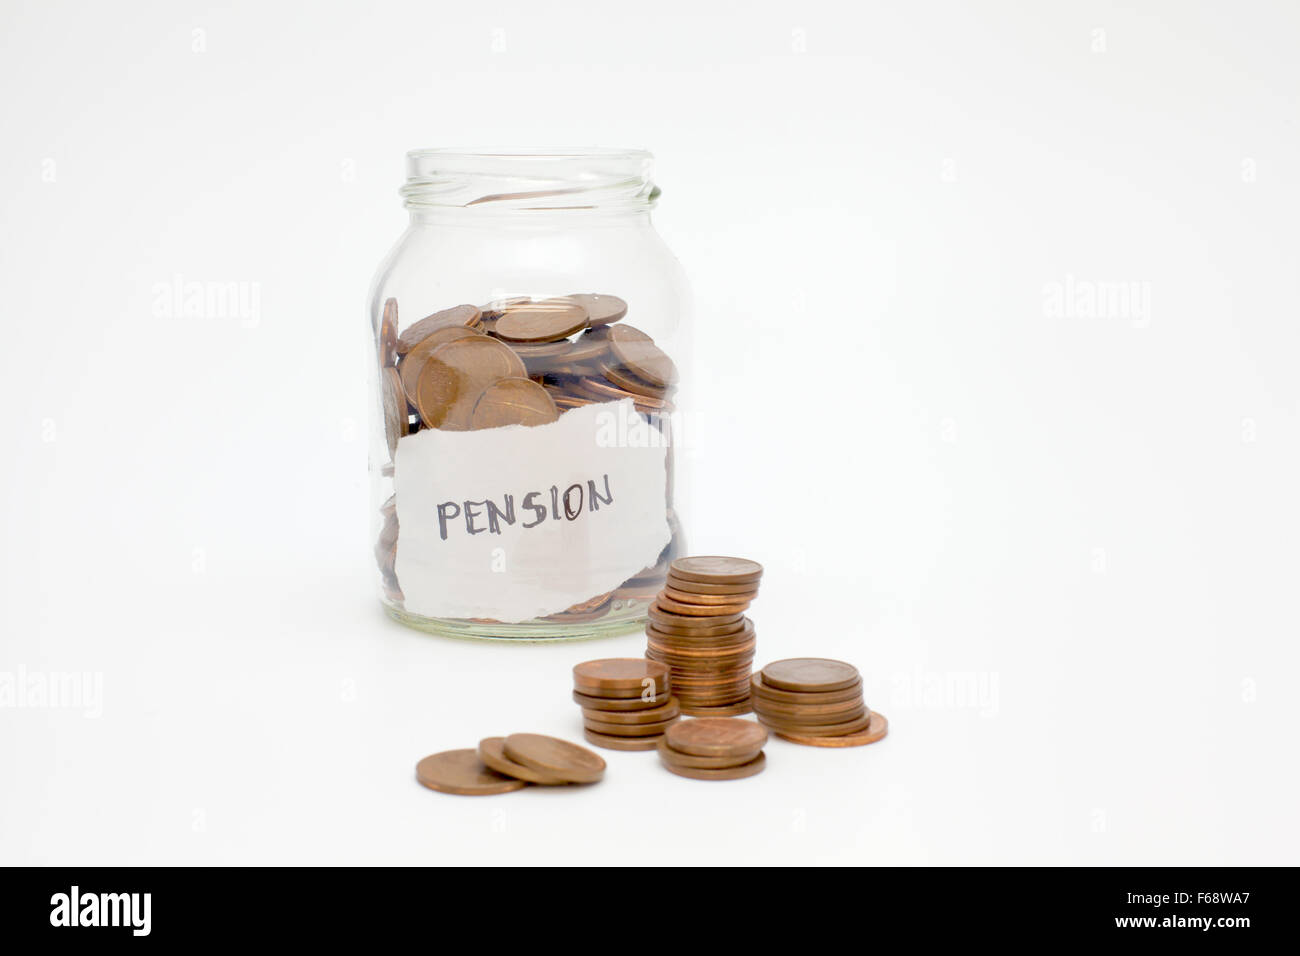 Pension (coins in a glass jar) - Stock Image